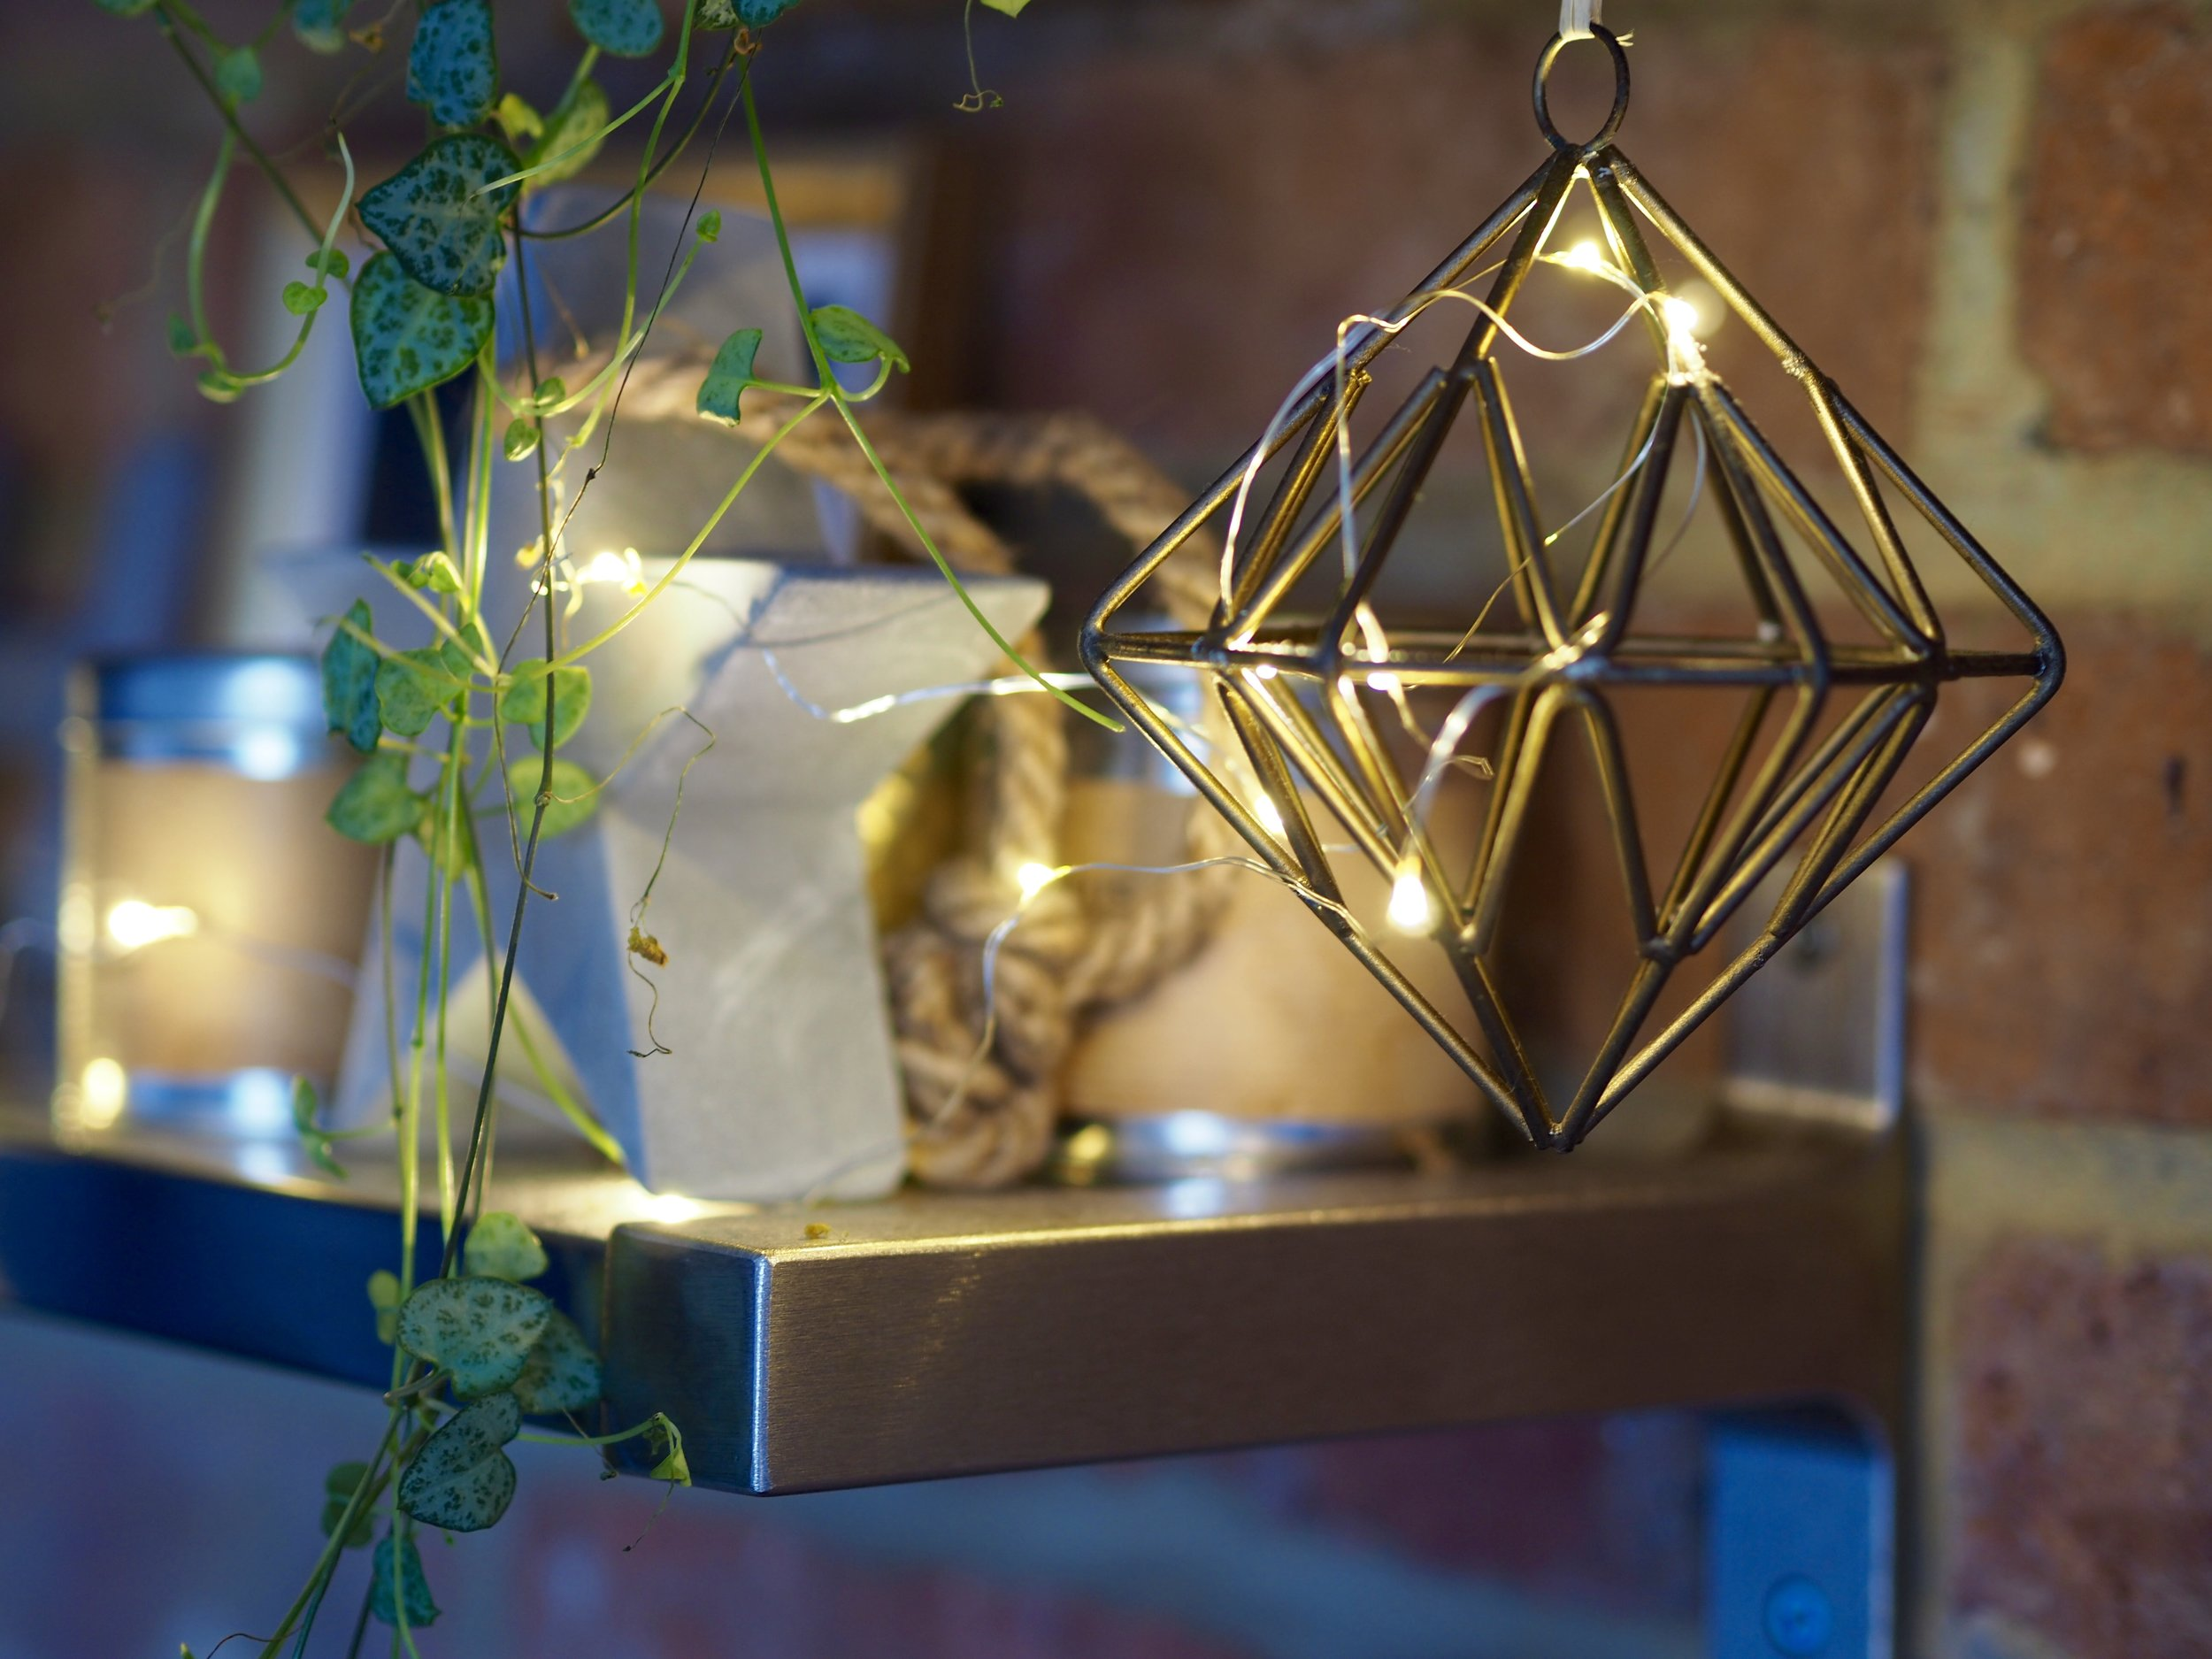 How beautiful does the warmth of the light look against the brass......I love these micro lights because their subtle warm light and small size don't overpower my favourite bits and bobs......